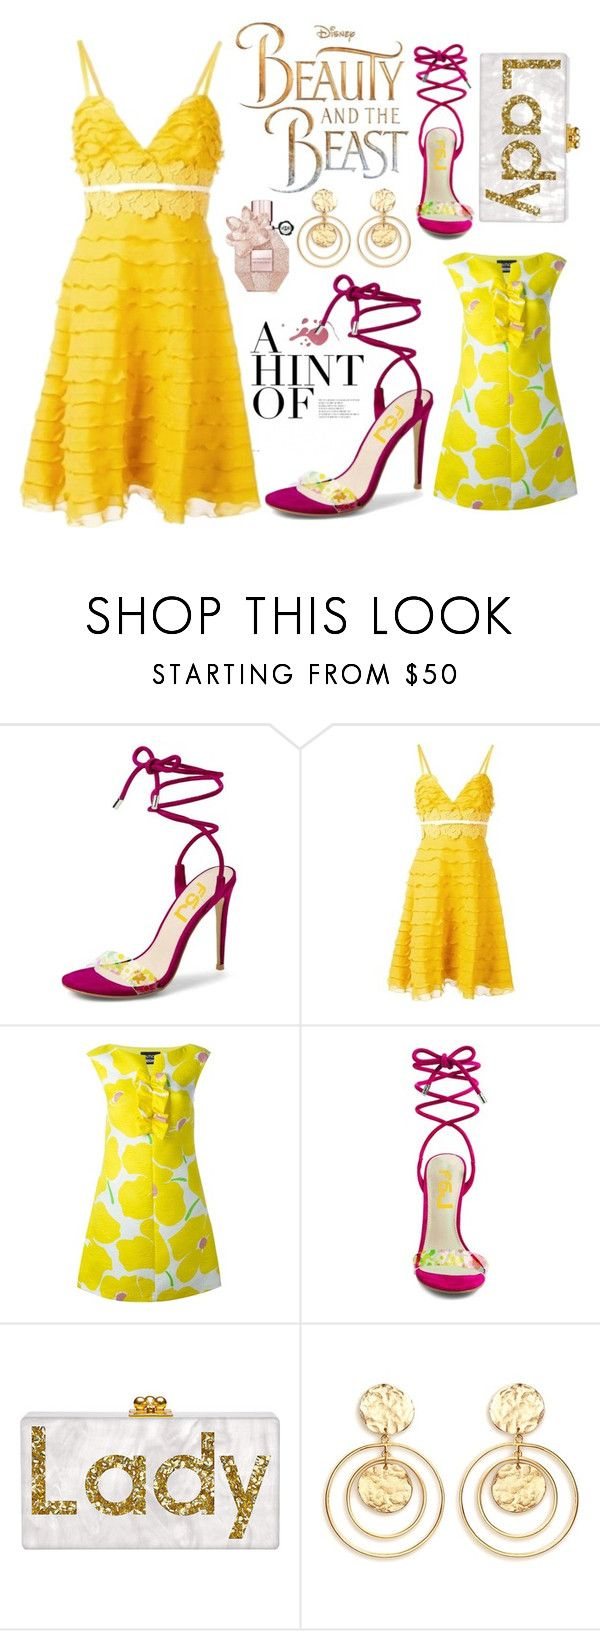 """FSJ open toe sandals high heels lace up"" by fsjamazon ❤ liked on Polyvore featuring Giambattista Valli, Boutique Moschino, Disney and Kenneth Jay Lane"